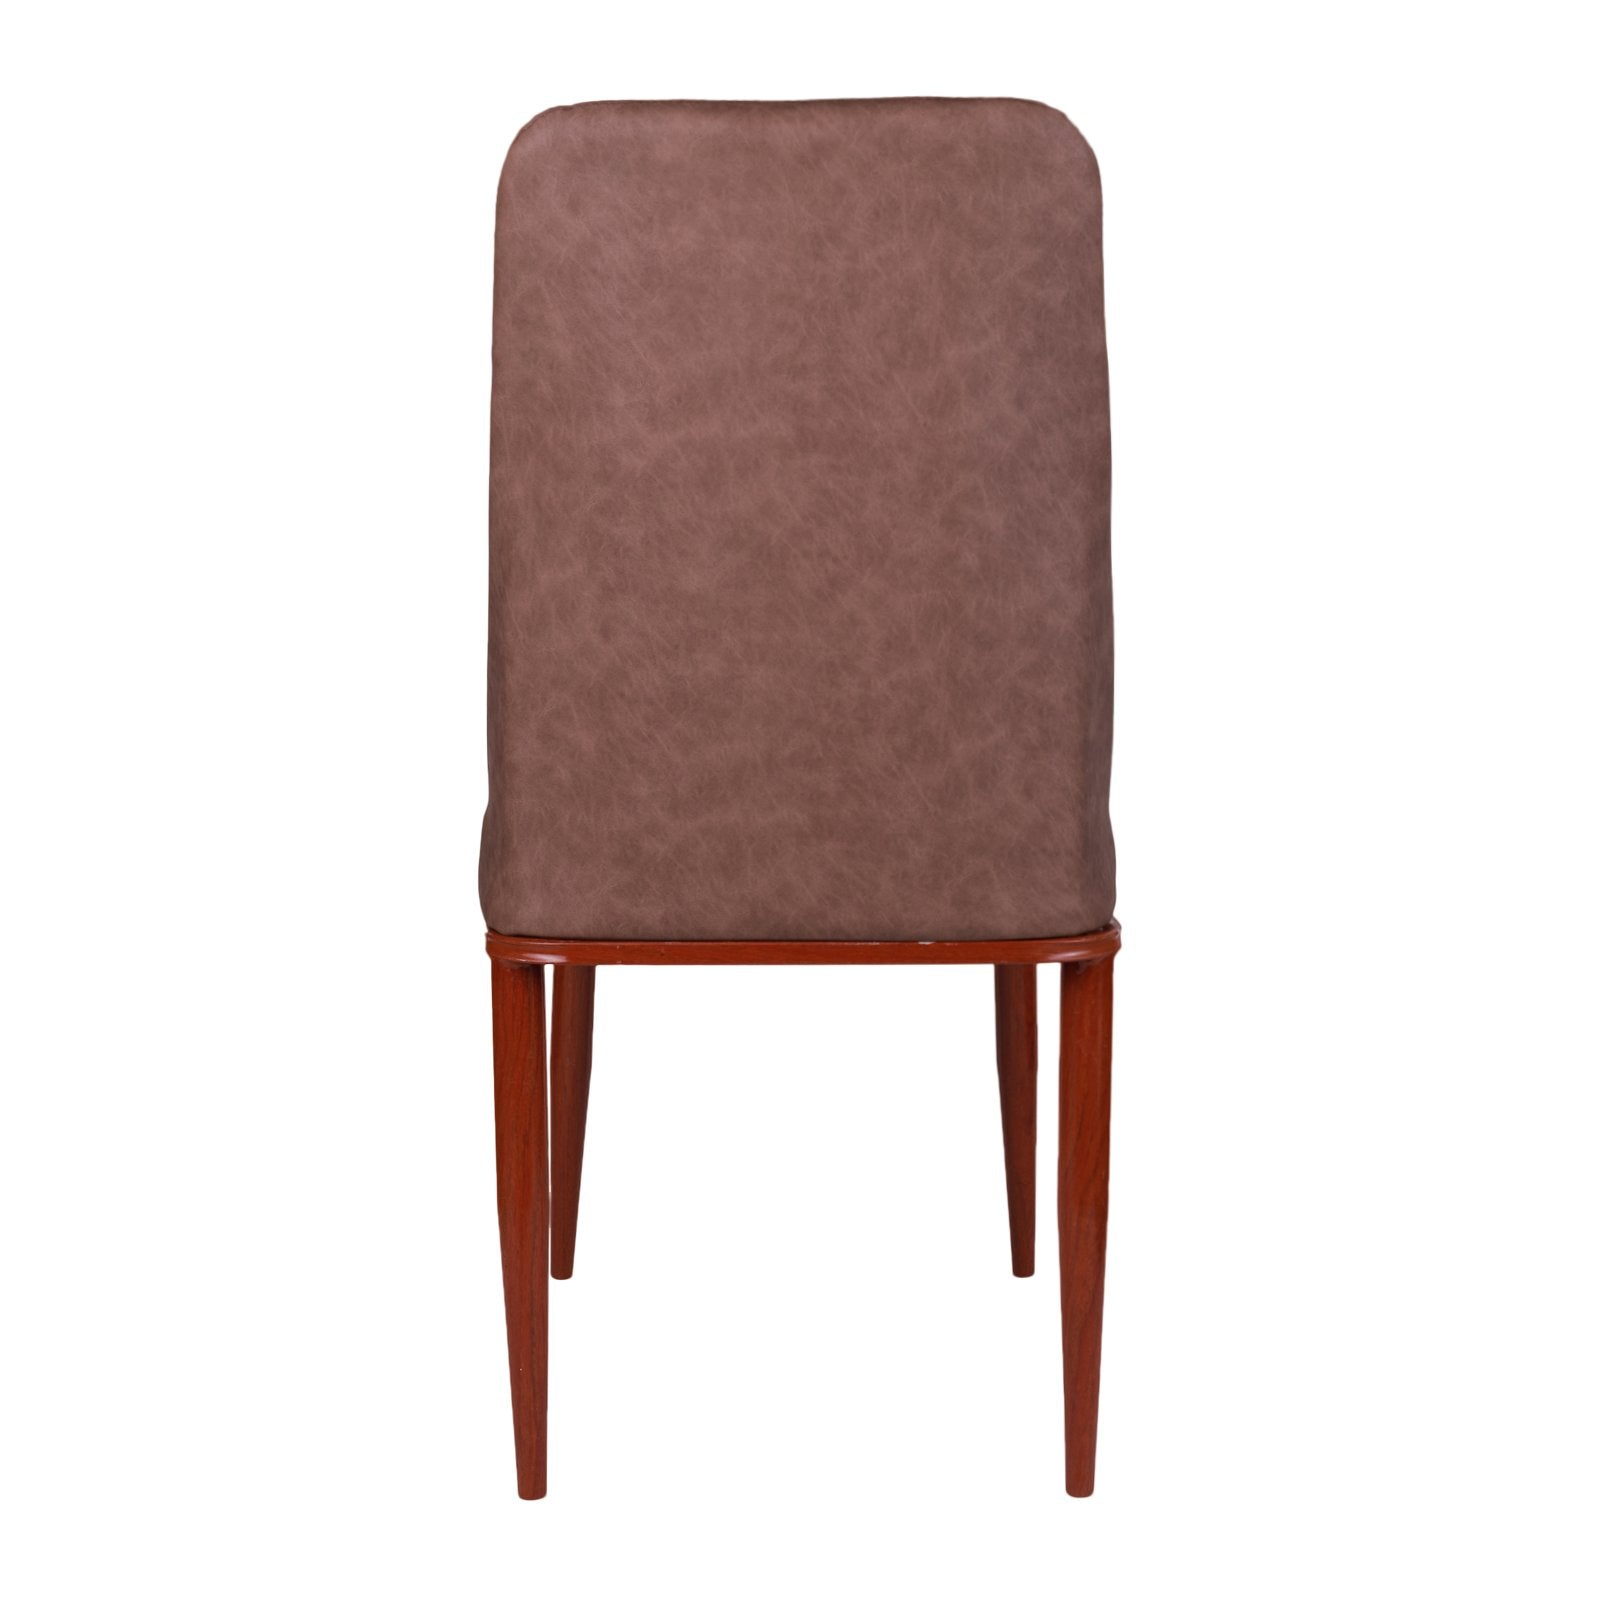 Armless Chair in Light Brown Color